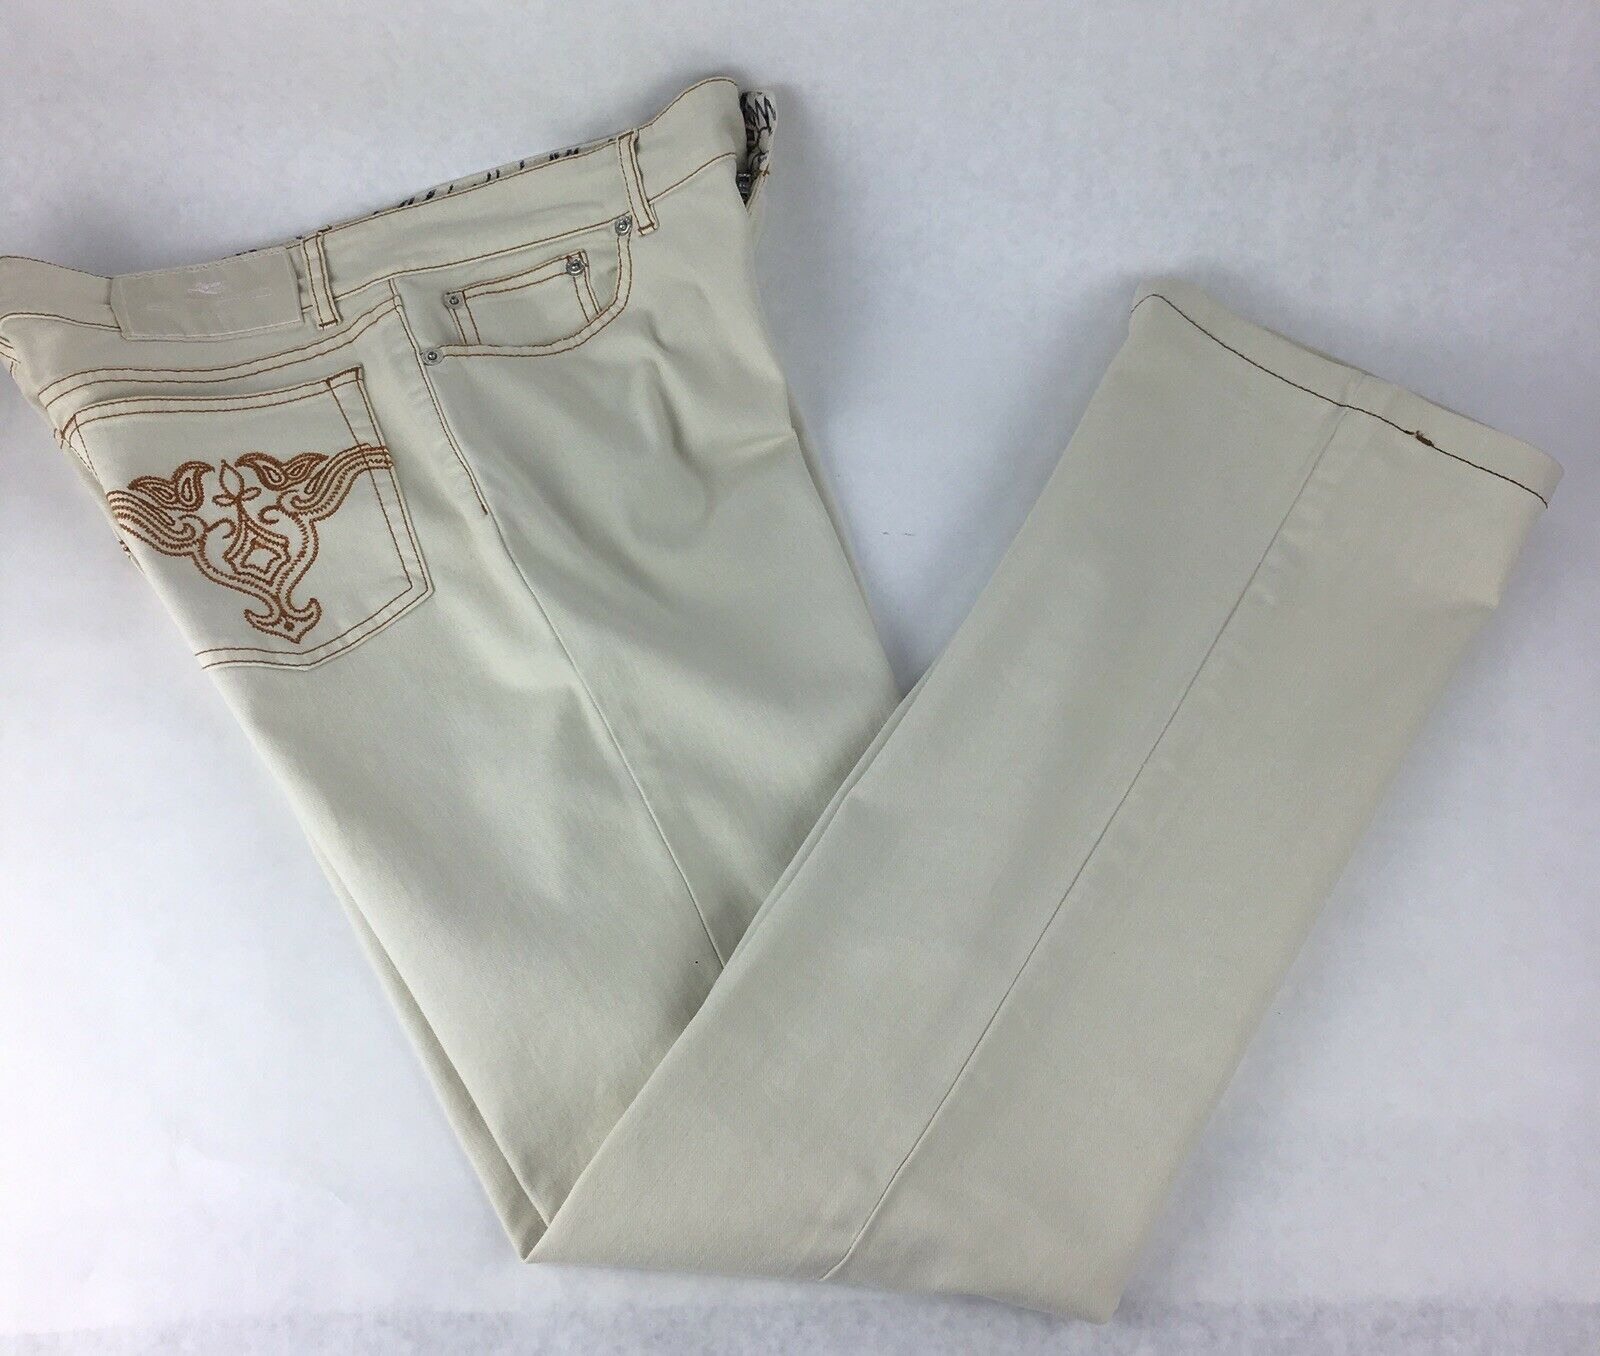 Etro Casual Pants Women 31 US White Ivory Cotton Stretch Made in